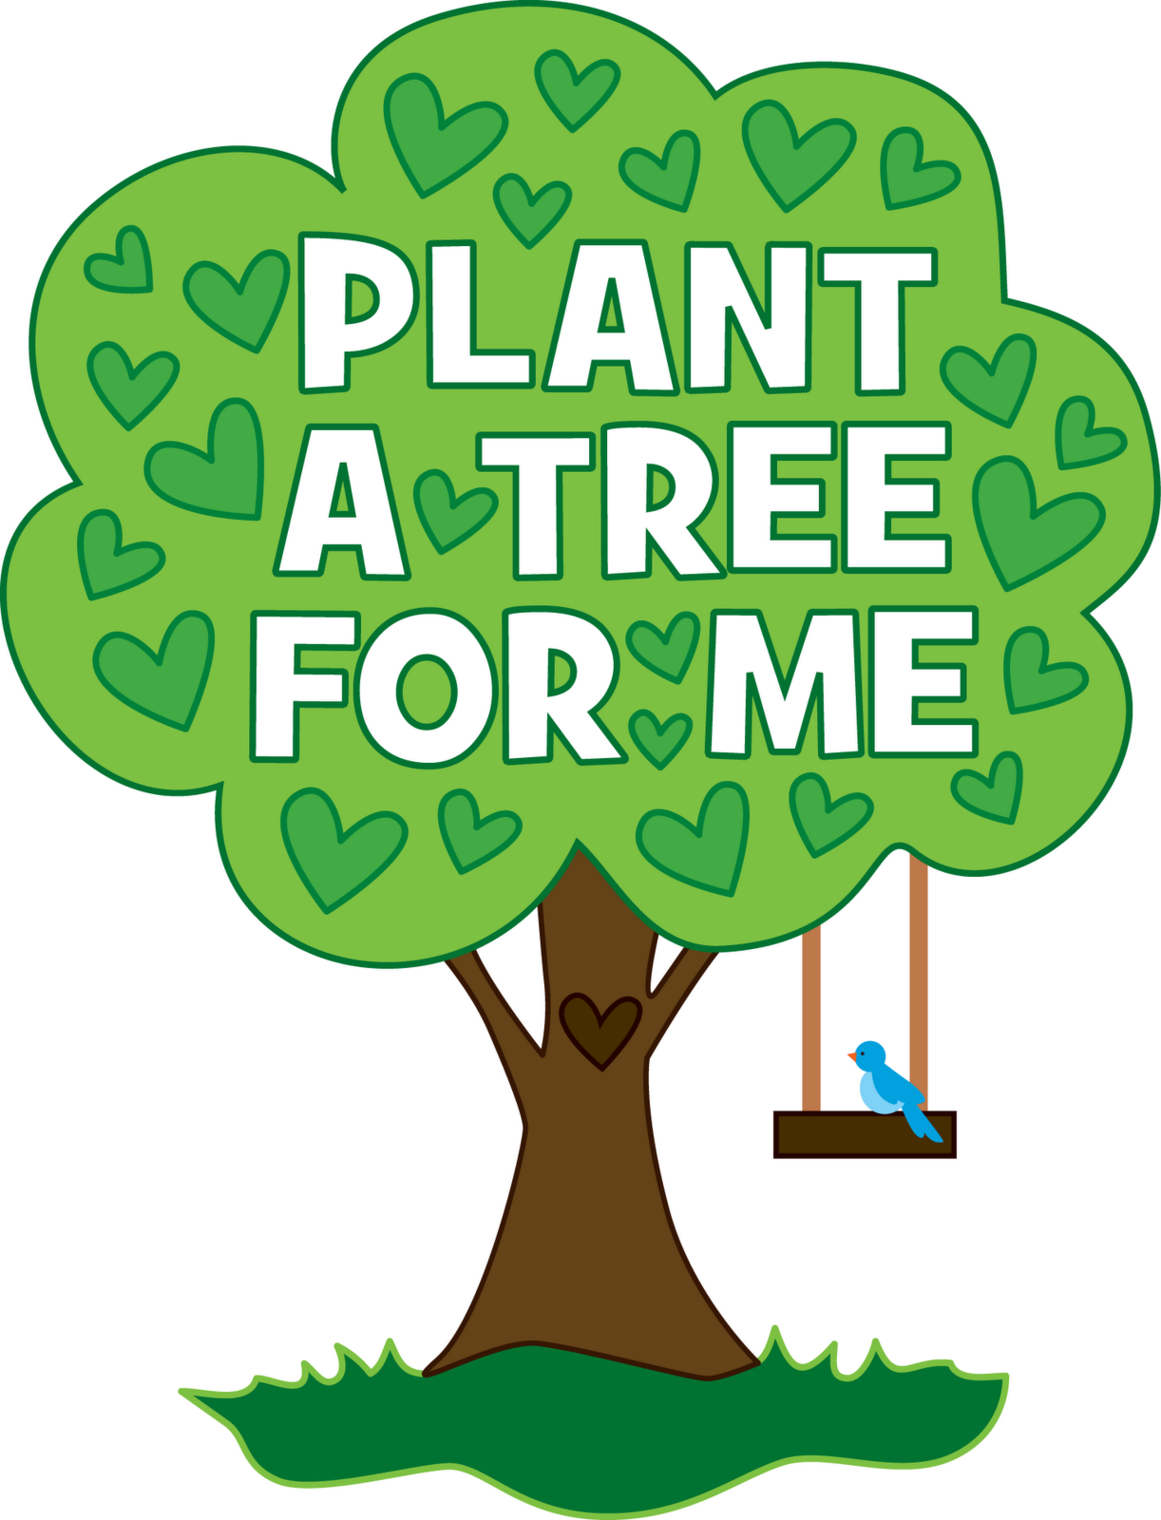 Tree Planting Clipart - Free to use Clip Art Resource